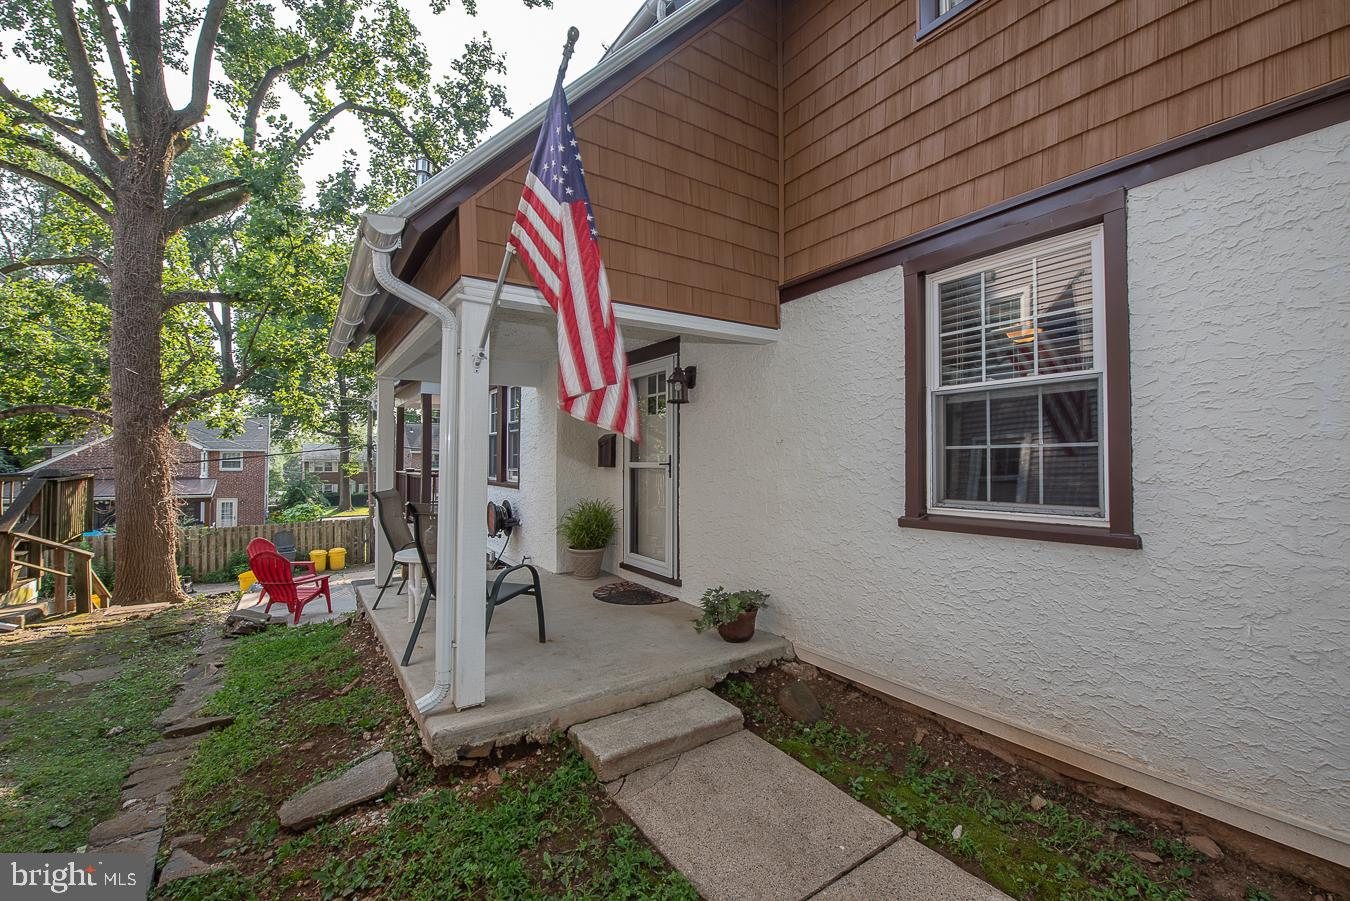 Welcome to this absolutely stunning renovated 3 bedroom, 1 bathroom home in the Penn Wynne section of Wynnewood! Enter under the front porch into this spacious and bright home that boasts the highly sought after open floor plan. Upon entering this home, you will be greeted by the living room with a gas stove, large dining room and gorgeous kitchen that overlooks the back deck and yard. The updated kitchen was spared no detail with granite countertops, tile backsplash and farmhouse sink. Heading to the second floor, you will find 3 spacious bedrooms and a full bathroom with tile floor and combination tub/shower. Last but not least is the walk-out unfinished basement with plenty of room for storage or opportunity for extra living space! This home also offers a 1-car garage and 1 car off street parking. Some of the many upgrades done to this home to note are new electrical wiring (2017), new exterior doors (2019), timber deck (2020), new gutters & siding (2020), furnace (2020) and much more! Walkable to award-winning Penn Wynne elementary (Lower Merion School District), several parks, and the library - This is one home you don't want to miss!